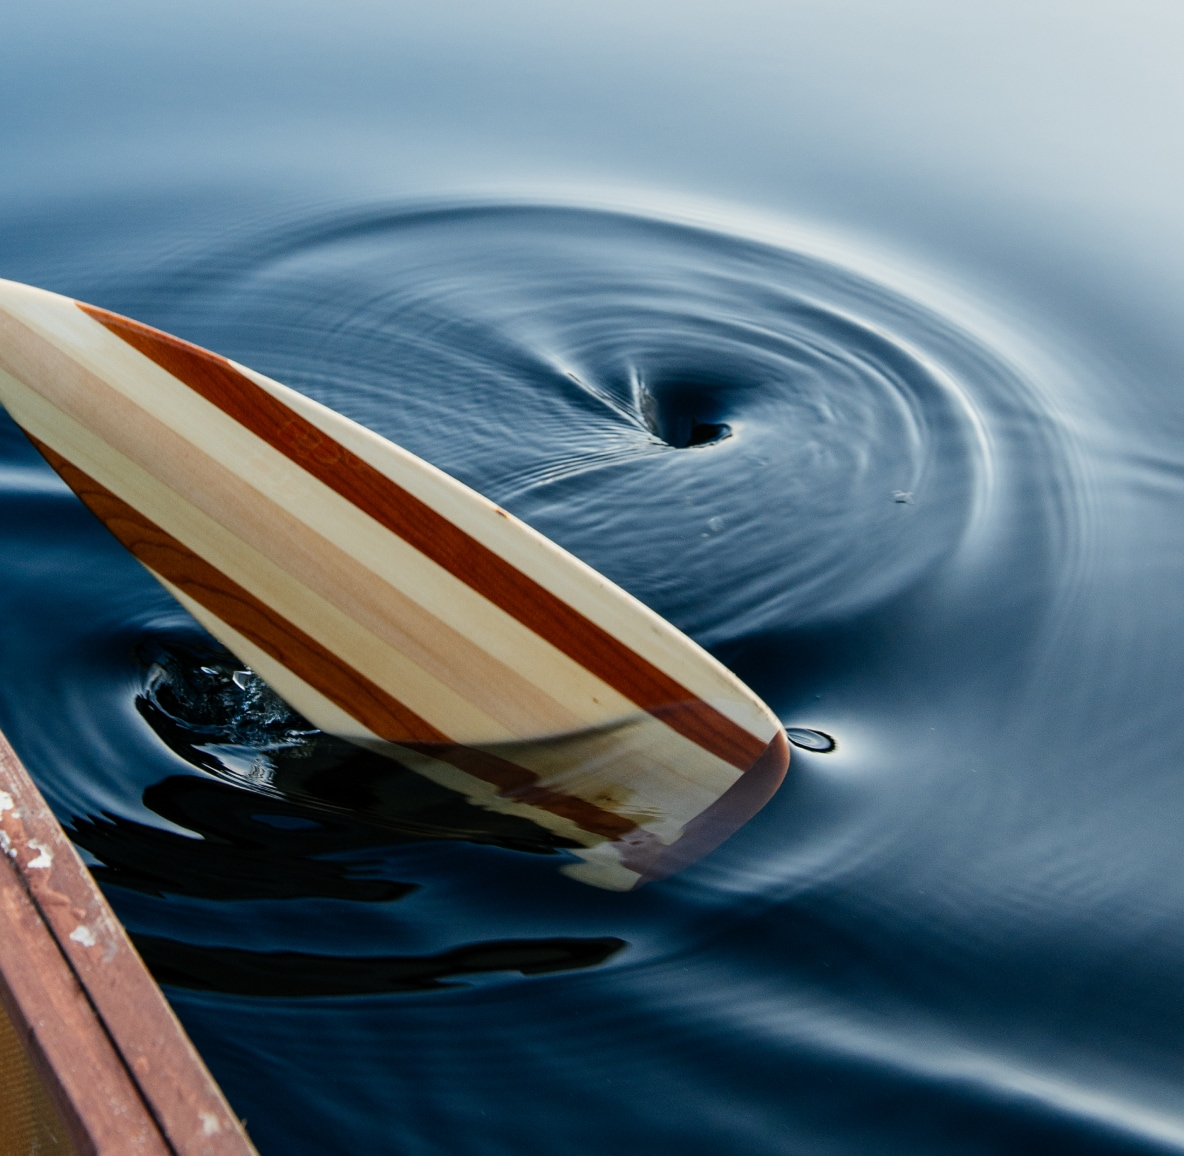 A brown and tan surfboard floats out of a whirlpool of deep blue water